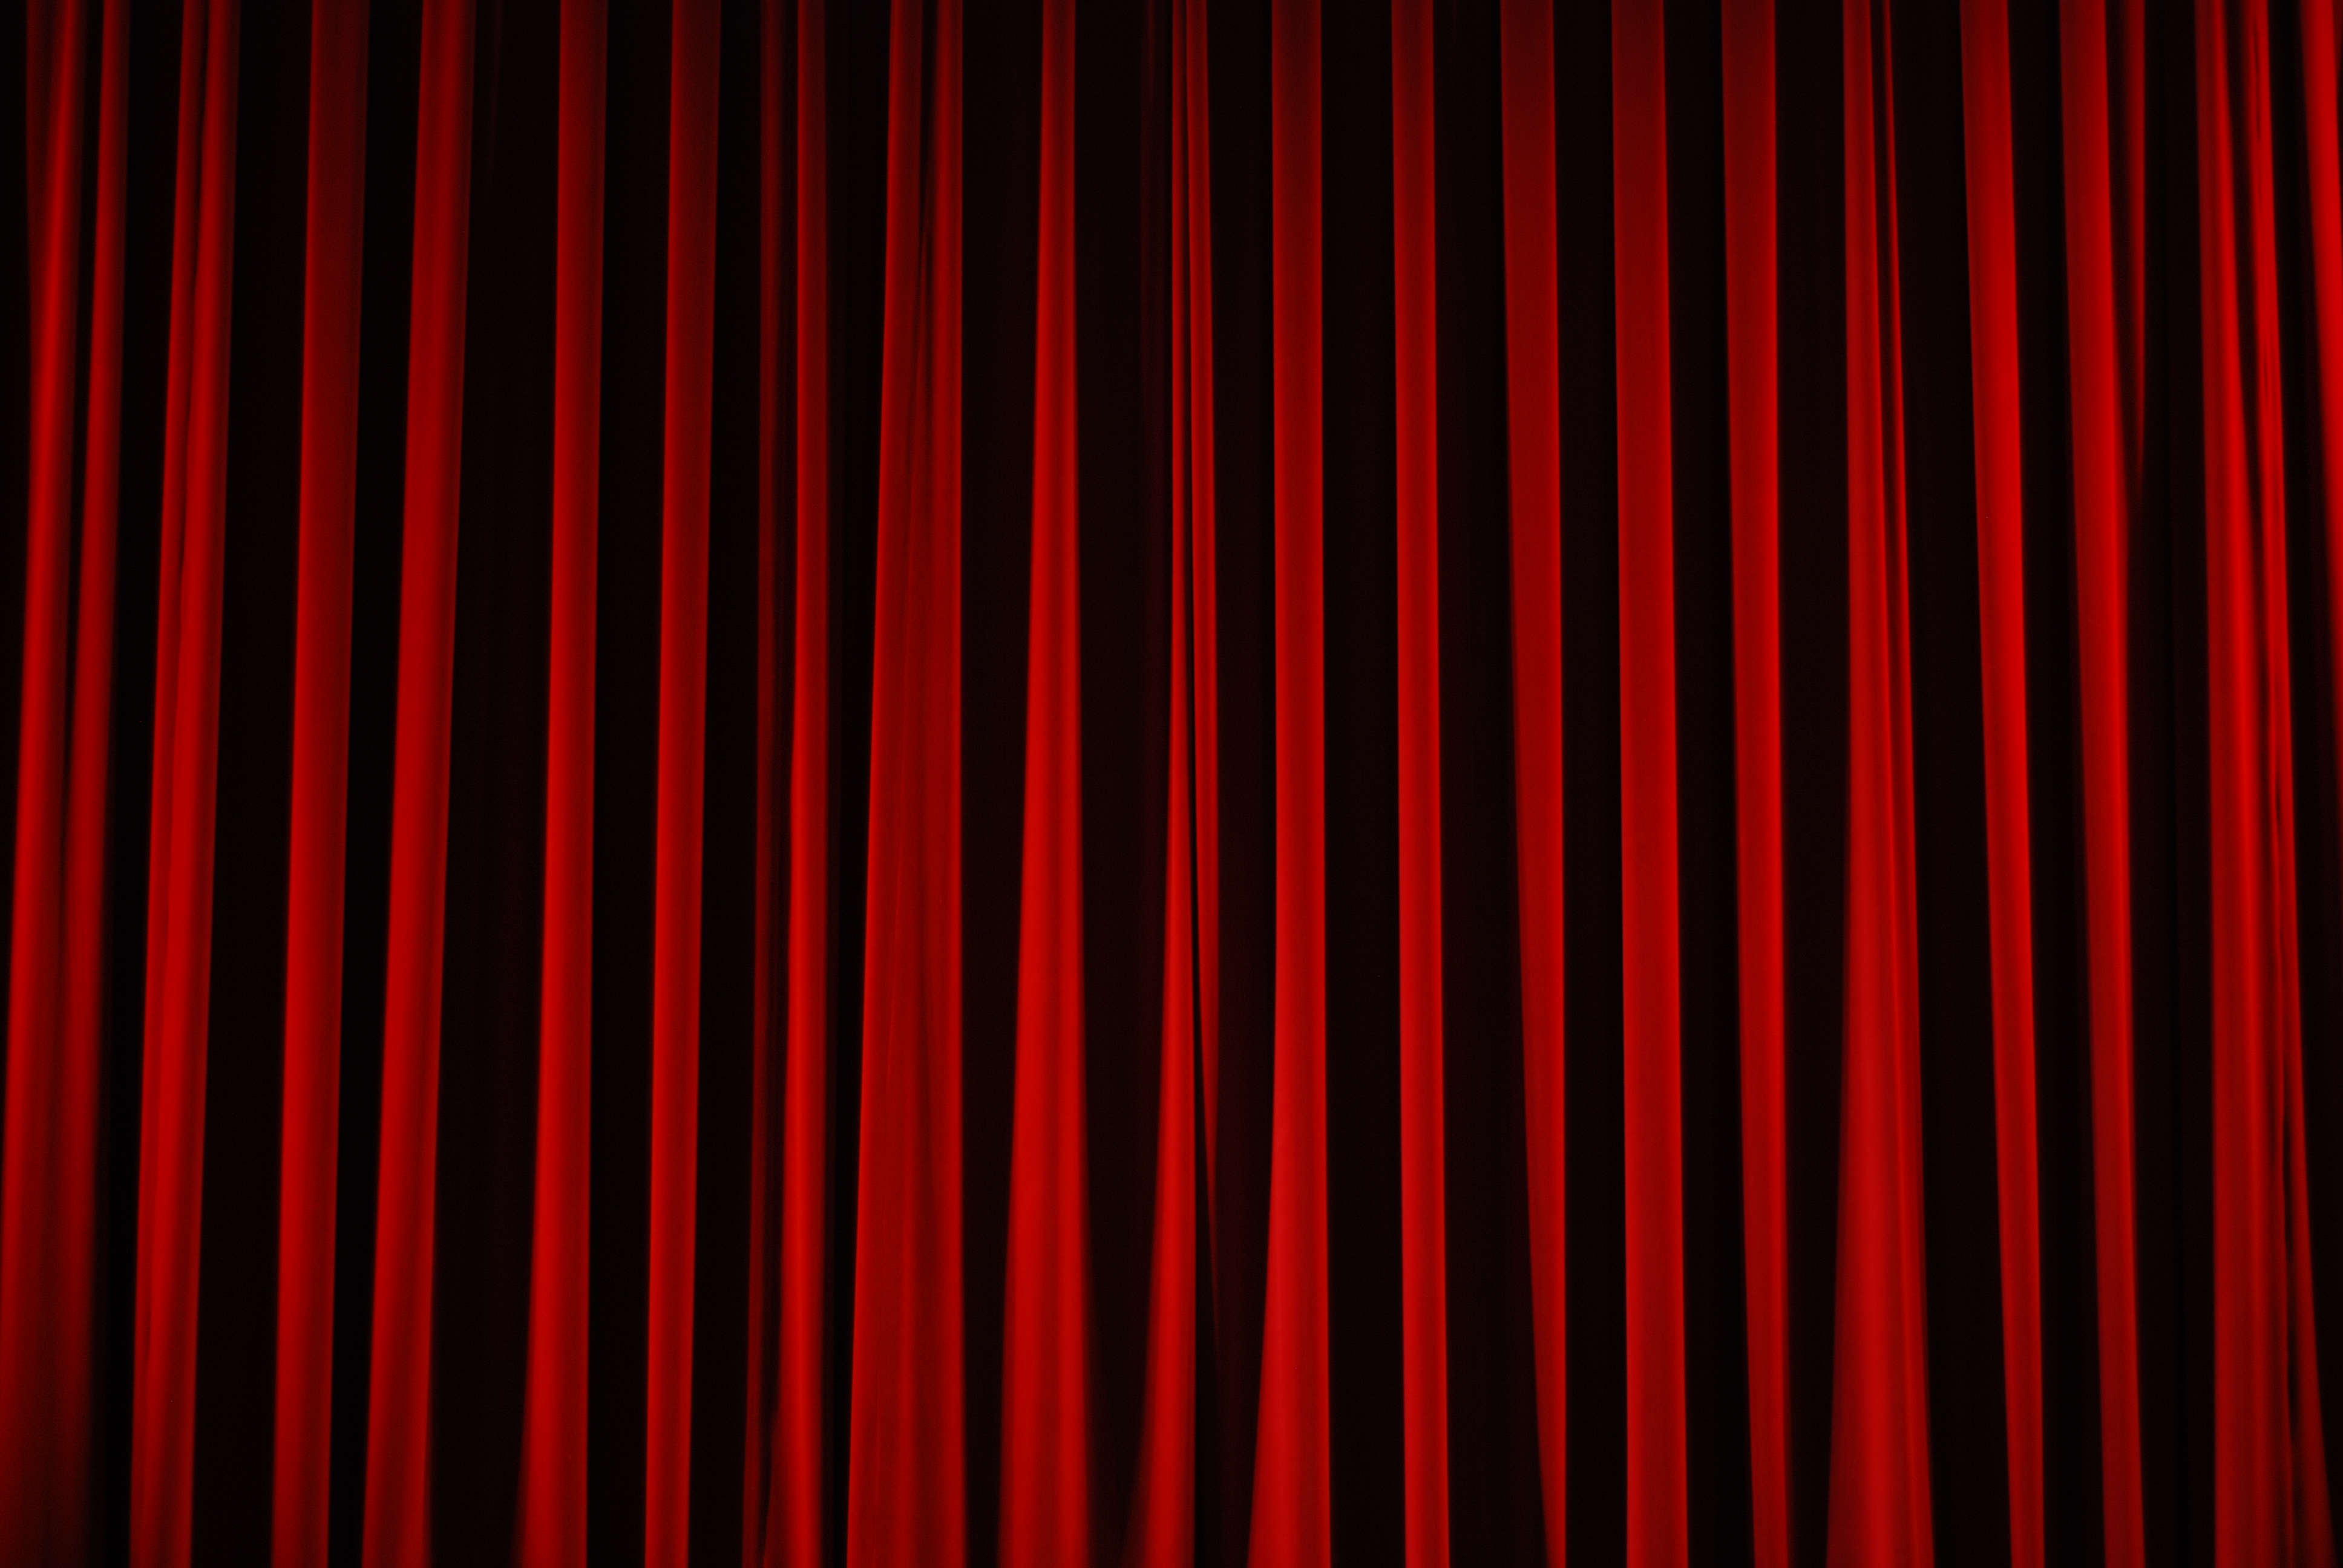 Red stage curtains - Red Stage Curtain Pictures Images And Stock Photos Istock